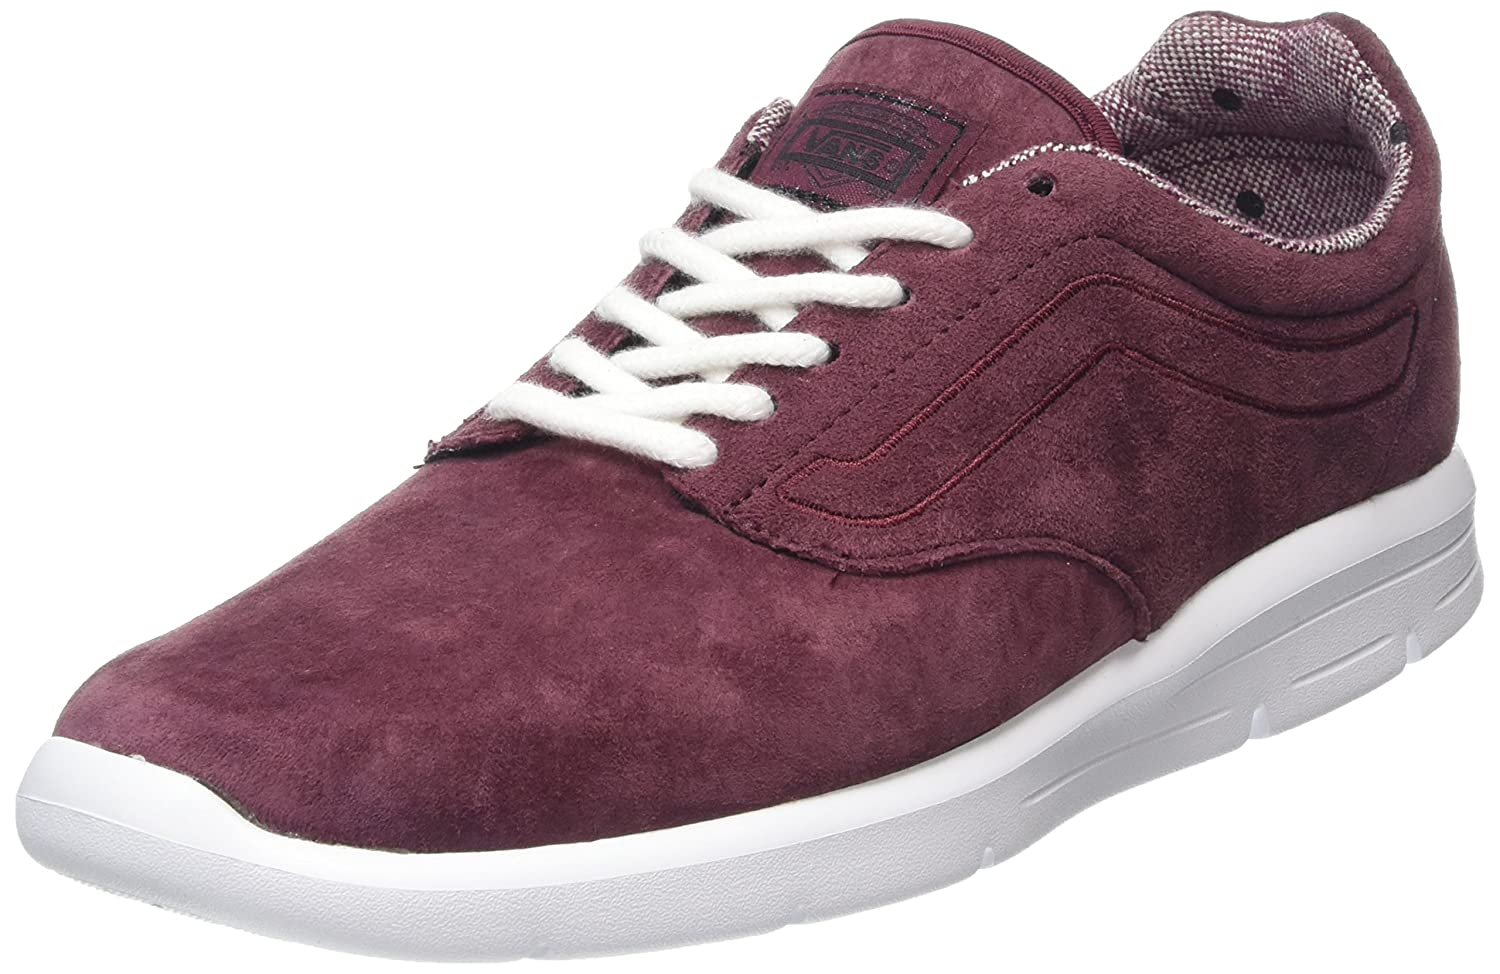 Vans Unisex-Erwachsene Unisex-Erwachsene Unisex-Erwachsene Iso 1.5 Low-Top  a519cc